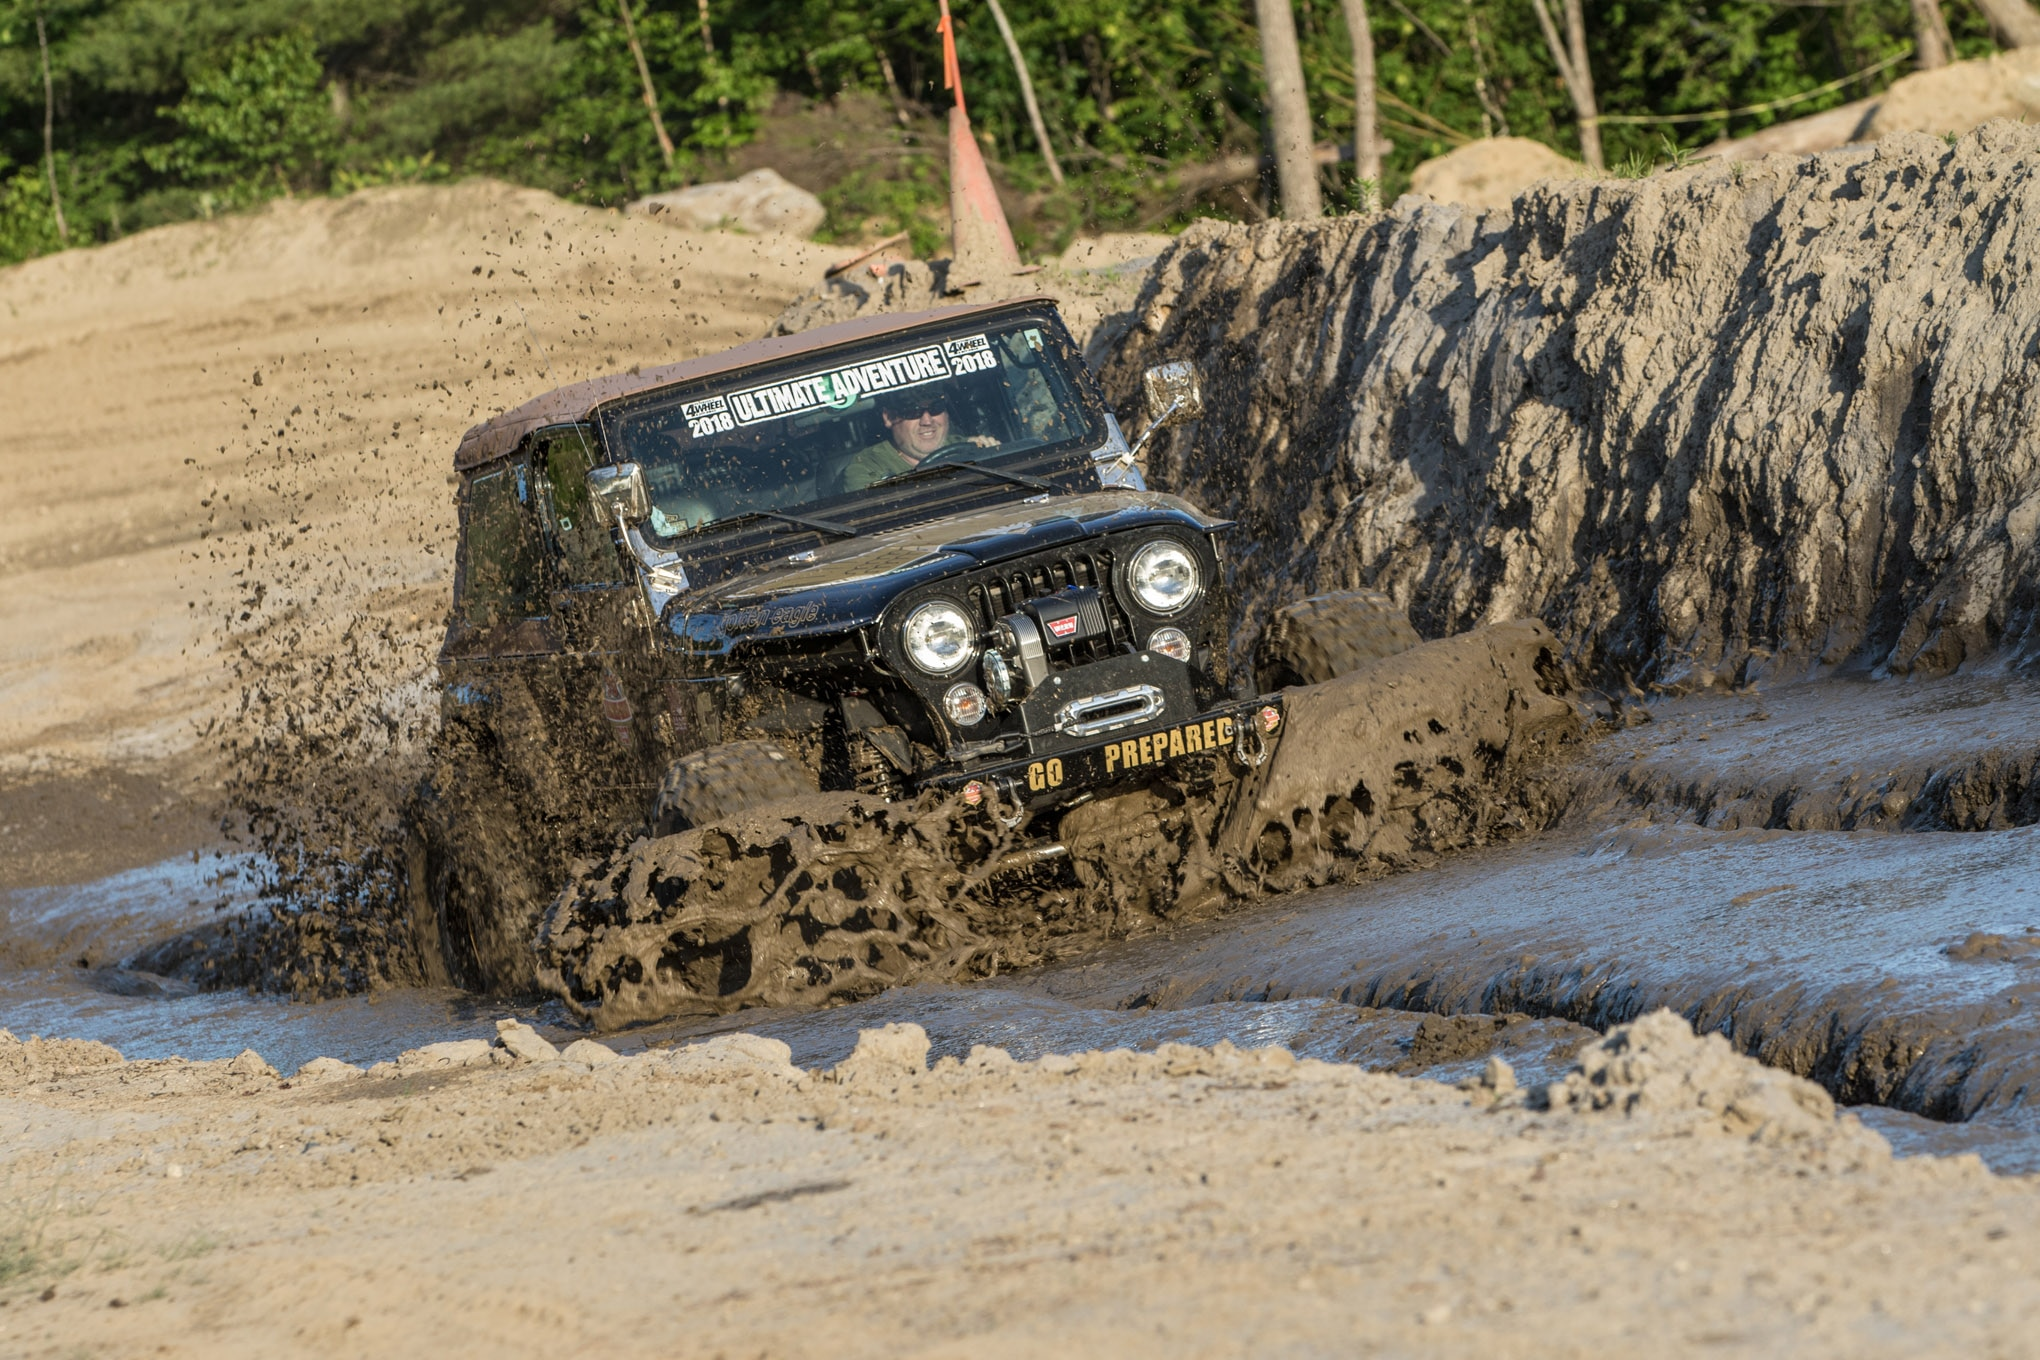 """Even with a stock 4.0L engine Corby Phillips wasn't scared to drive his Jeep through the mud pit. """"What's the worst that could happen? I have to use my winch?"""" the Warn rep joked. For the record, he made a clean run through the mud pit and made it through unassisted."""